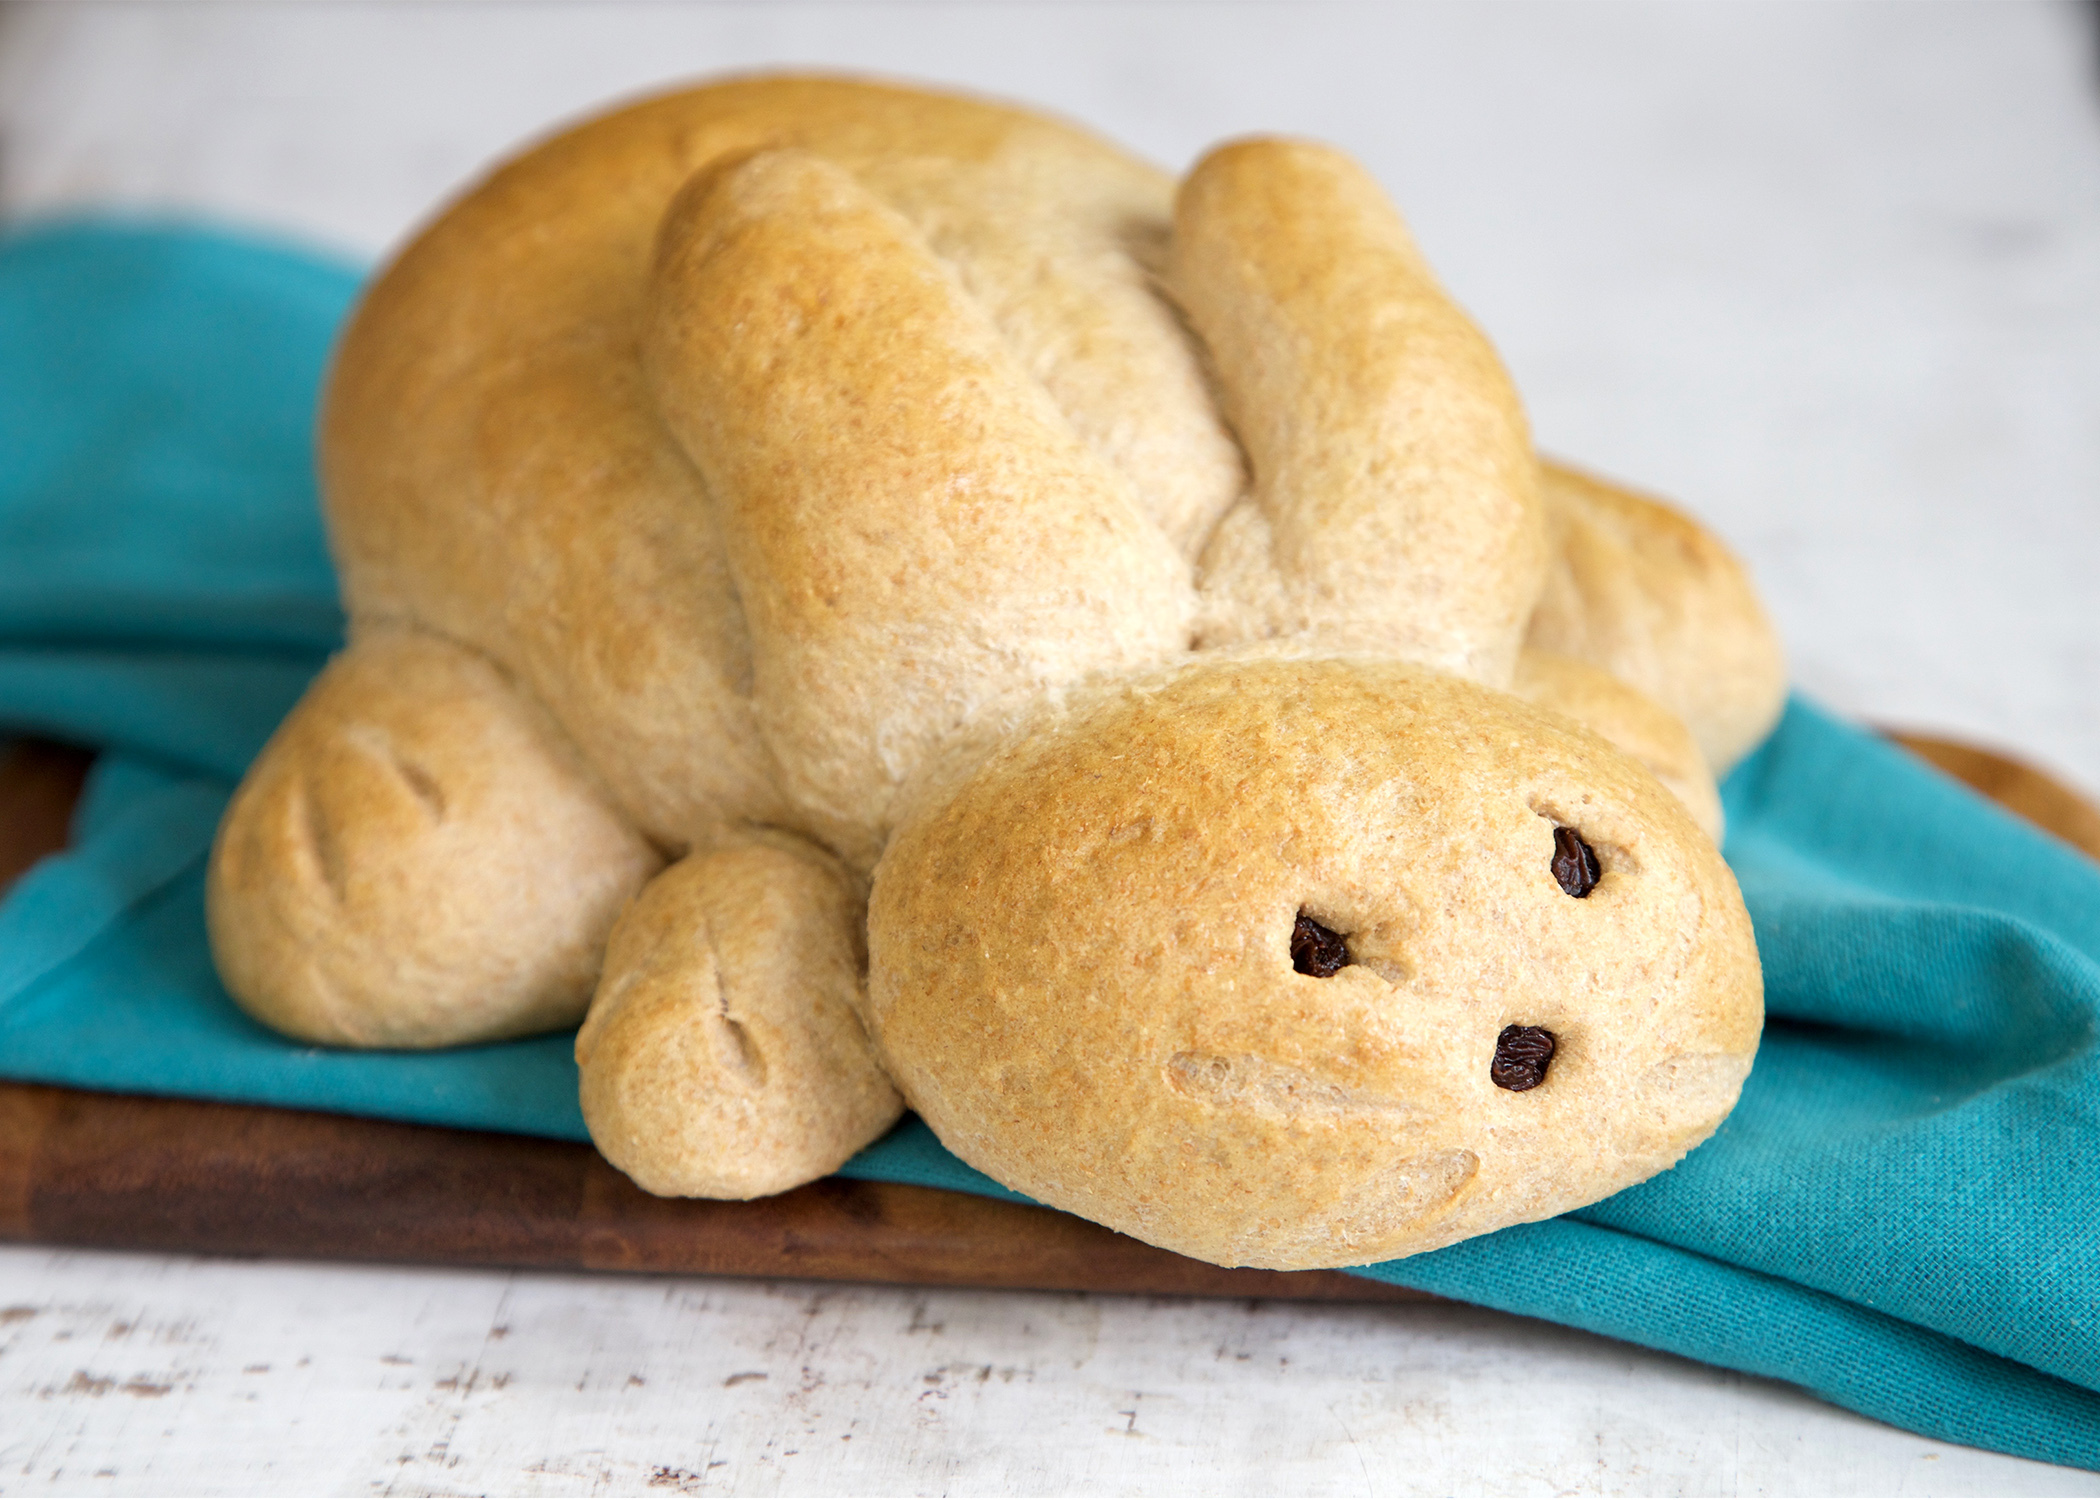 """The """"Honey Bunny,"""" one of the most popular food items at Great Harvest Bread for Easter. (Photo: Business Wire)"""